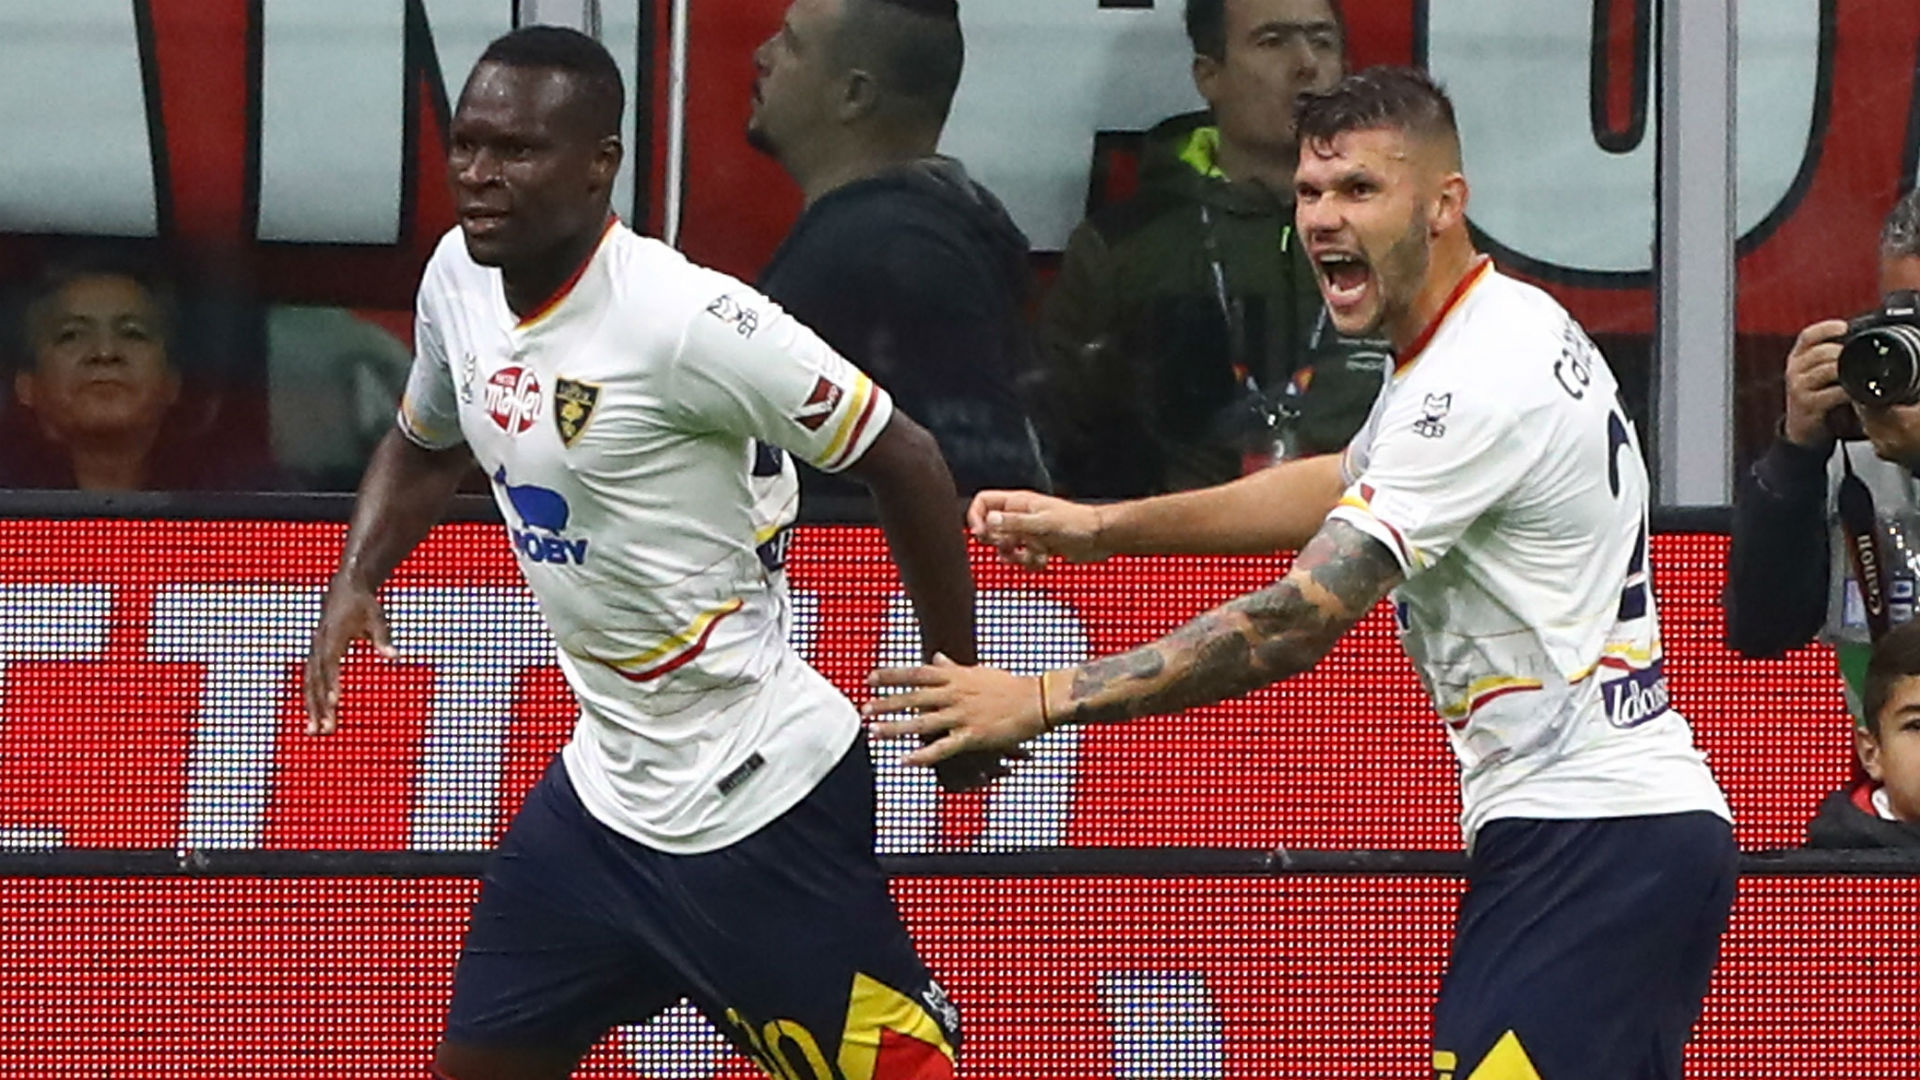 leccecropped zkwbfhu09dxf1h8ncbw01or7o - Lecce strike late to earn draw at AC Milan on Pioli's debut